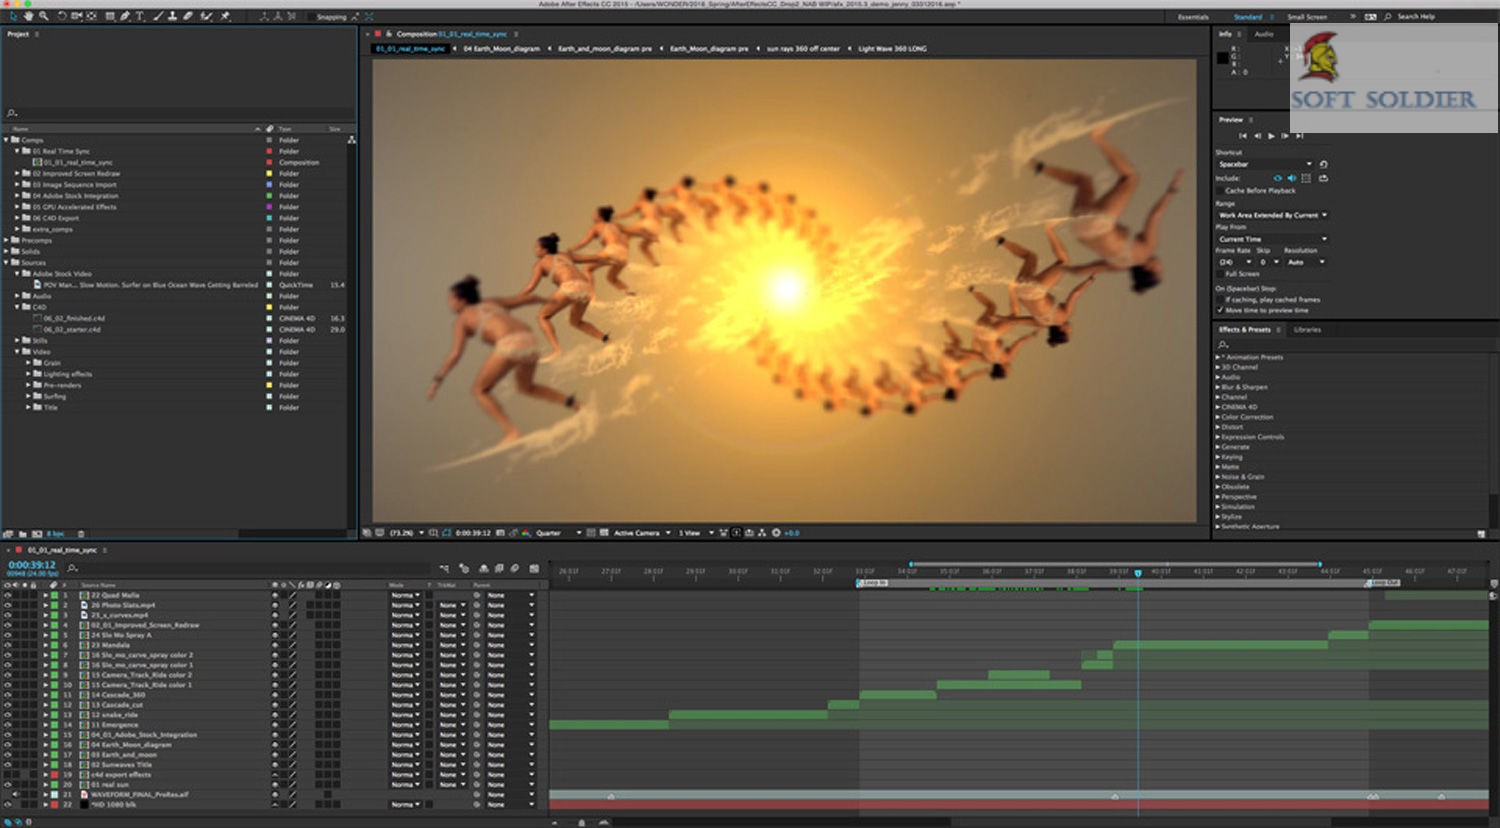 Adobe After Effects CC 2020 v17.0